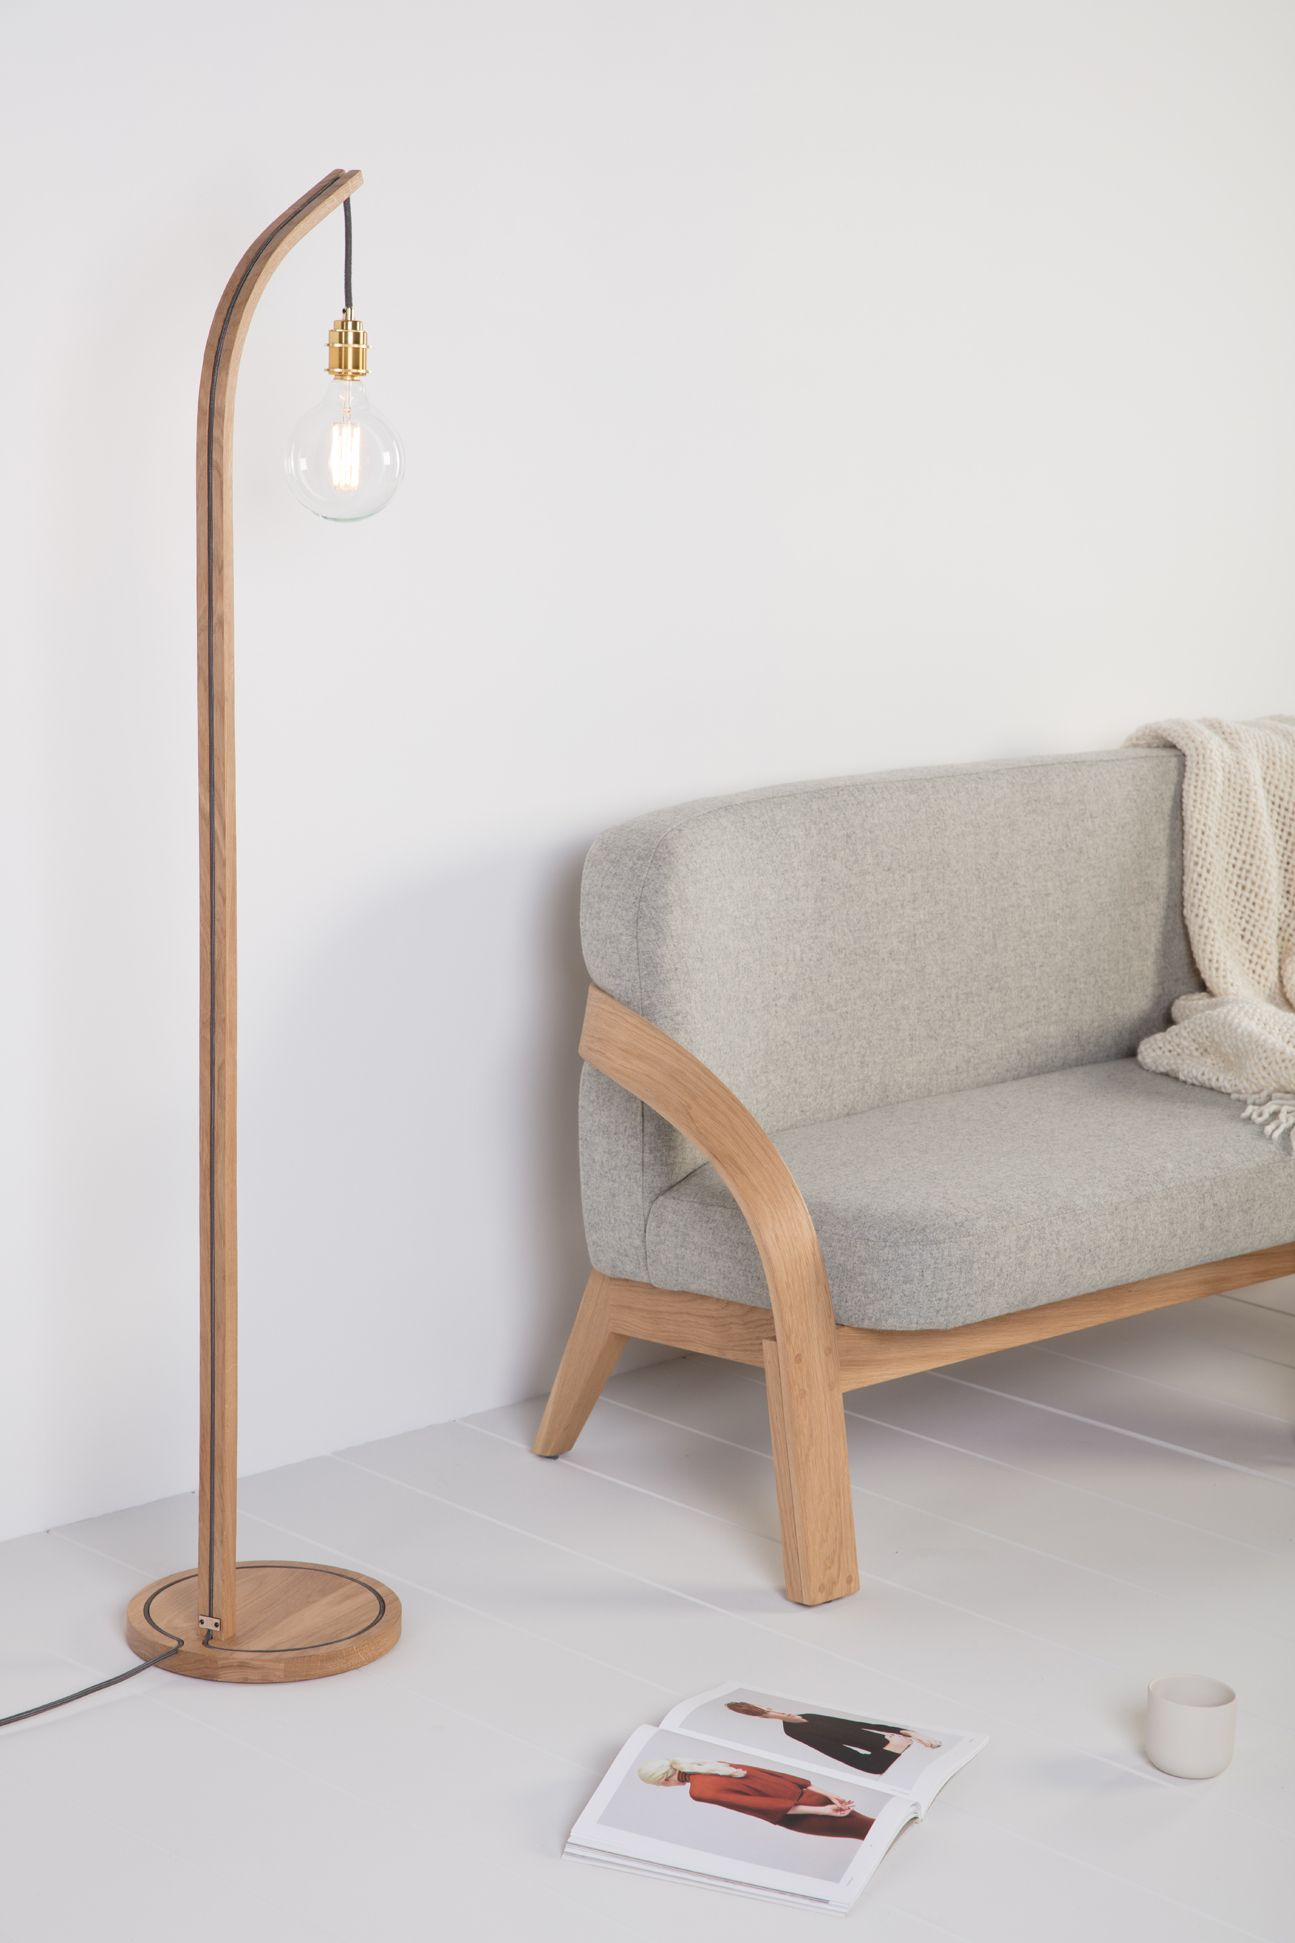 The Mooring Floor Light With Grey Flex Part Of The New Collection Aw17 By Tom Raffield Red Accent Chair Floor Lights Floor Standing Lamps